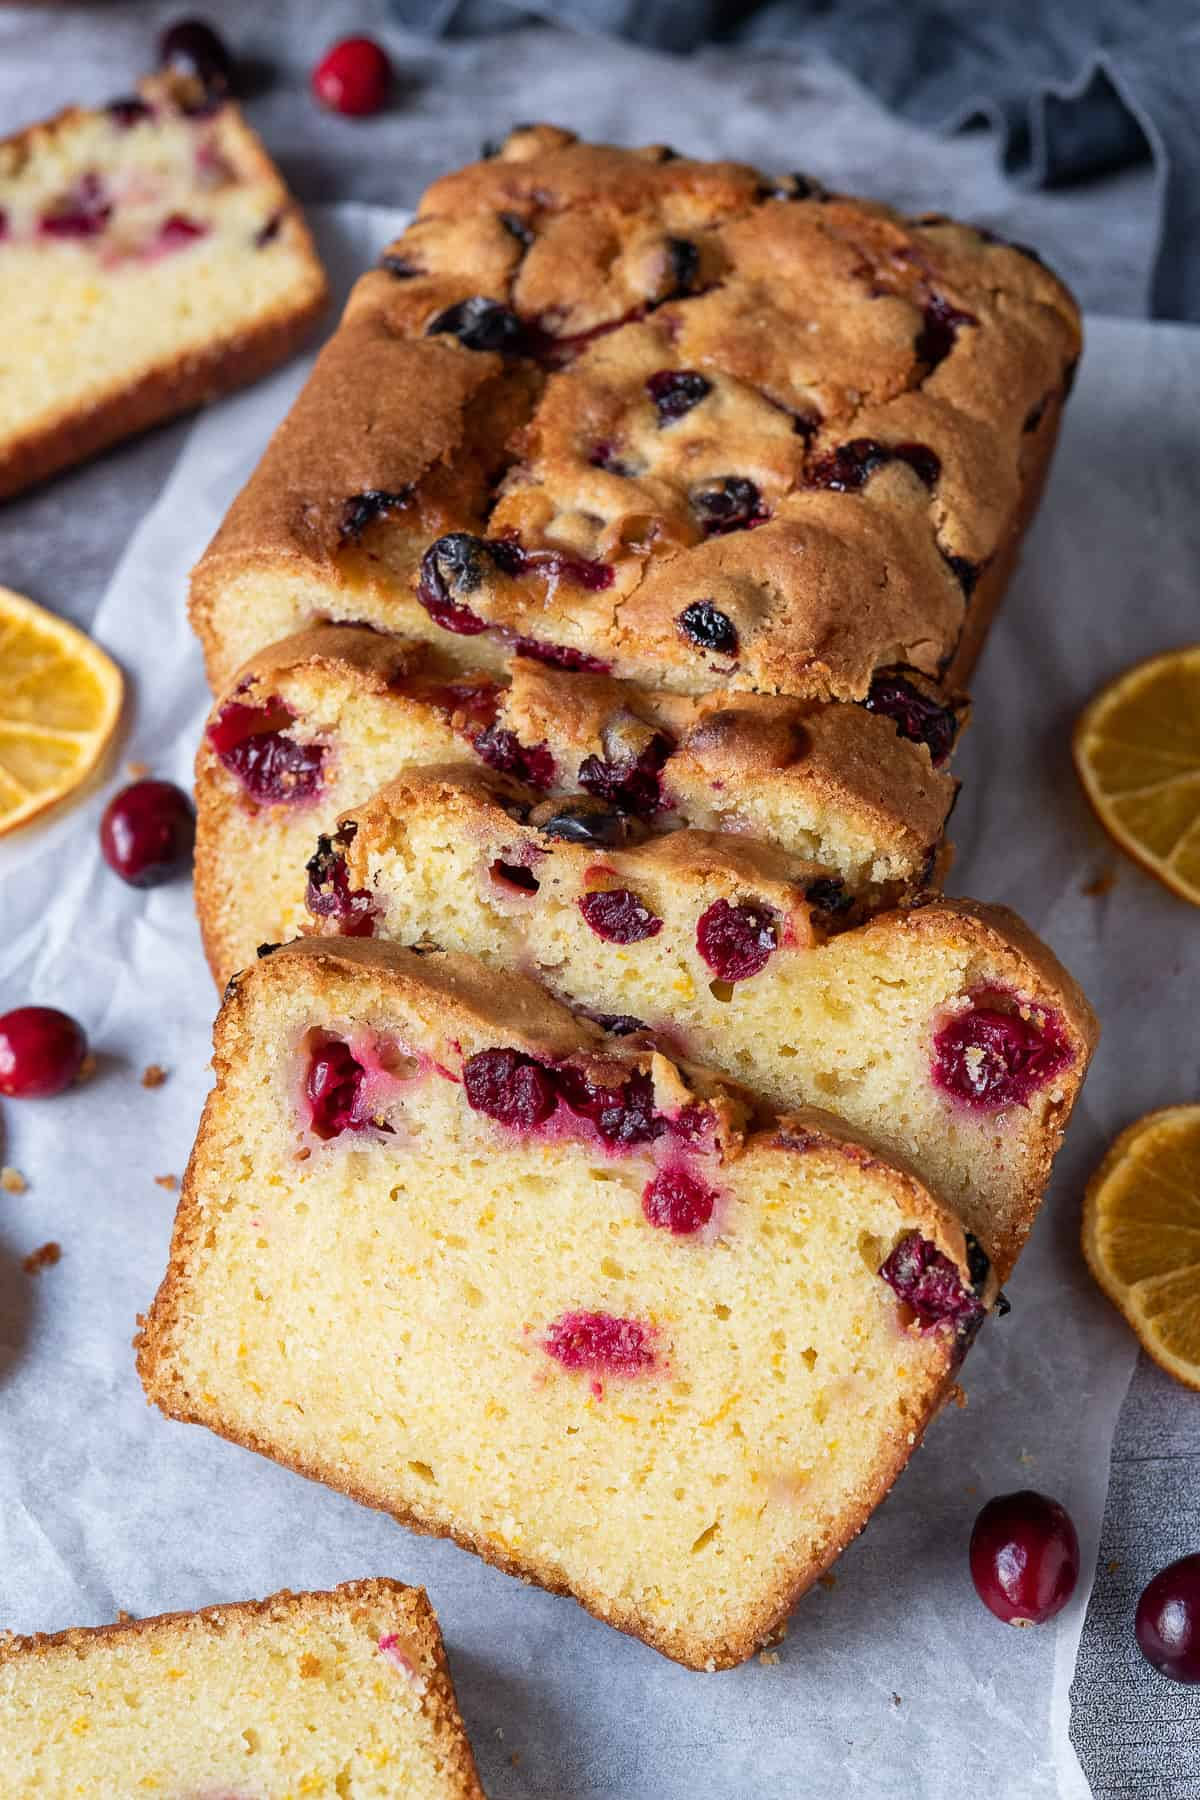 Sliced cranberry orange bread on a sheet of baking parchment on a grey background.